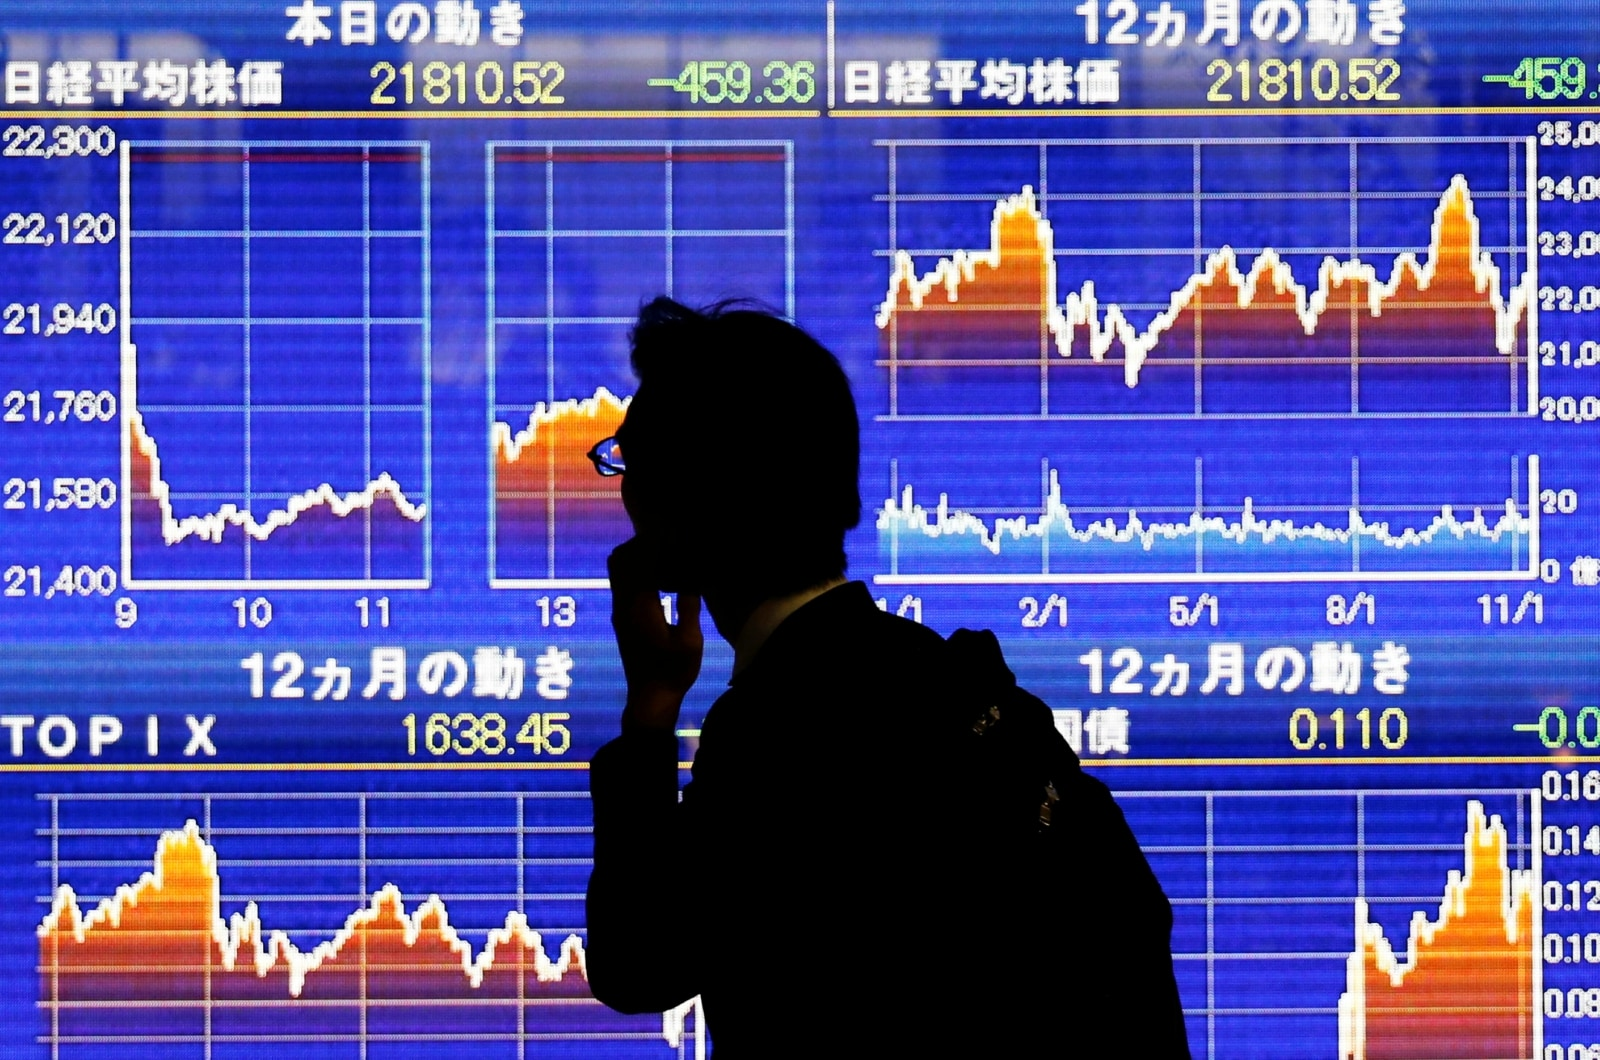 1. Asia: MSCI's broadest index of Asia-Pacific shares outside Japan ticked up 0.2 percent while Japan's Nikkei rose 0.4 percent to 21,464.12. In South Korea, the Kospi attempted to bounce back from Thursday's losses, rising around 1 percent after market open. The ASX 200 in Australia also rose 0.27 percent. (Image: Reuters)